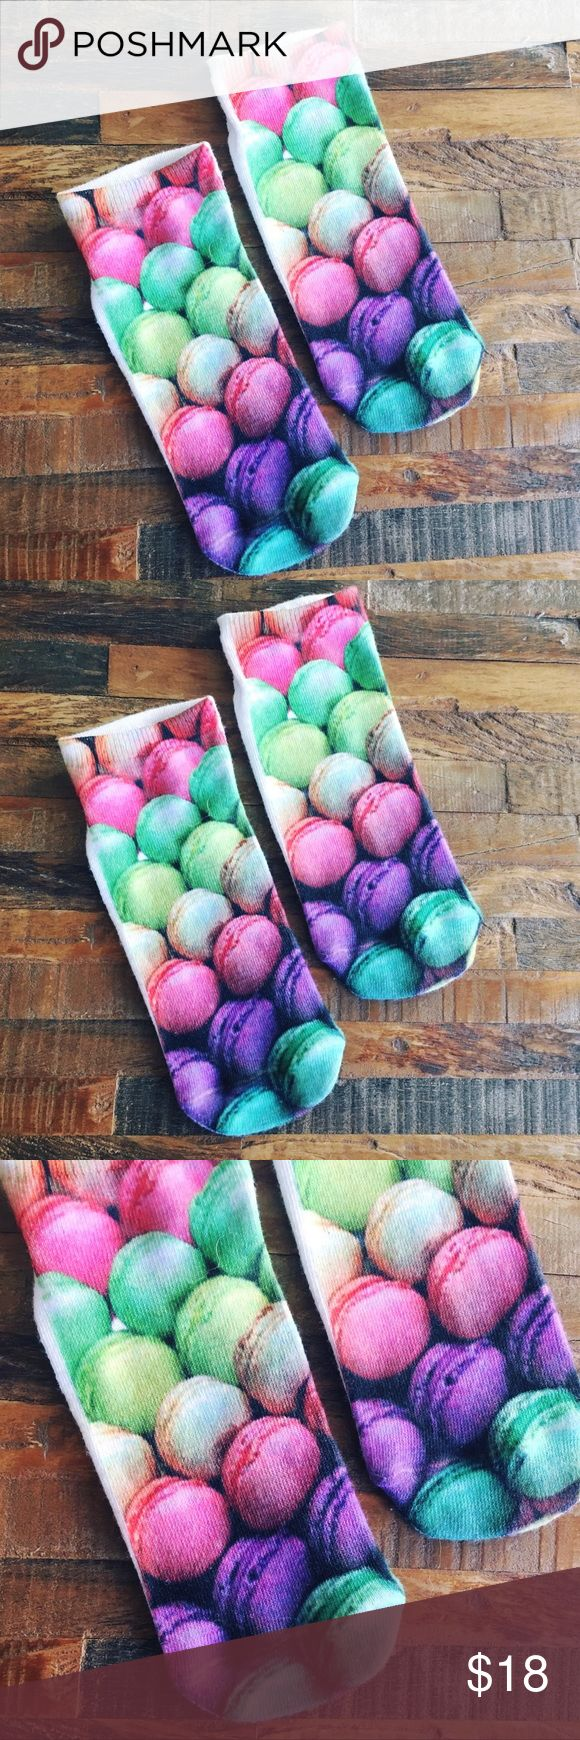 🍬Beautiful Low-Rise Socks with Macaroon Print Up for sale is a beautiful pair of brand new Anthropologie low-rise socks with macaroons print. Please feel free to contact me for any questions! Anthropologie Accessories Hosiery & Socks